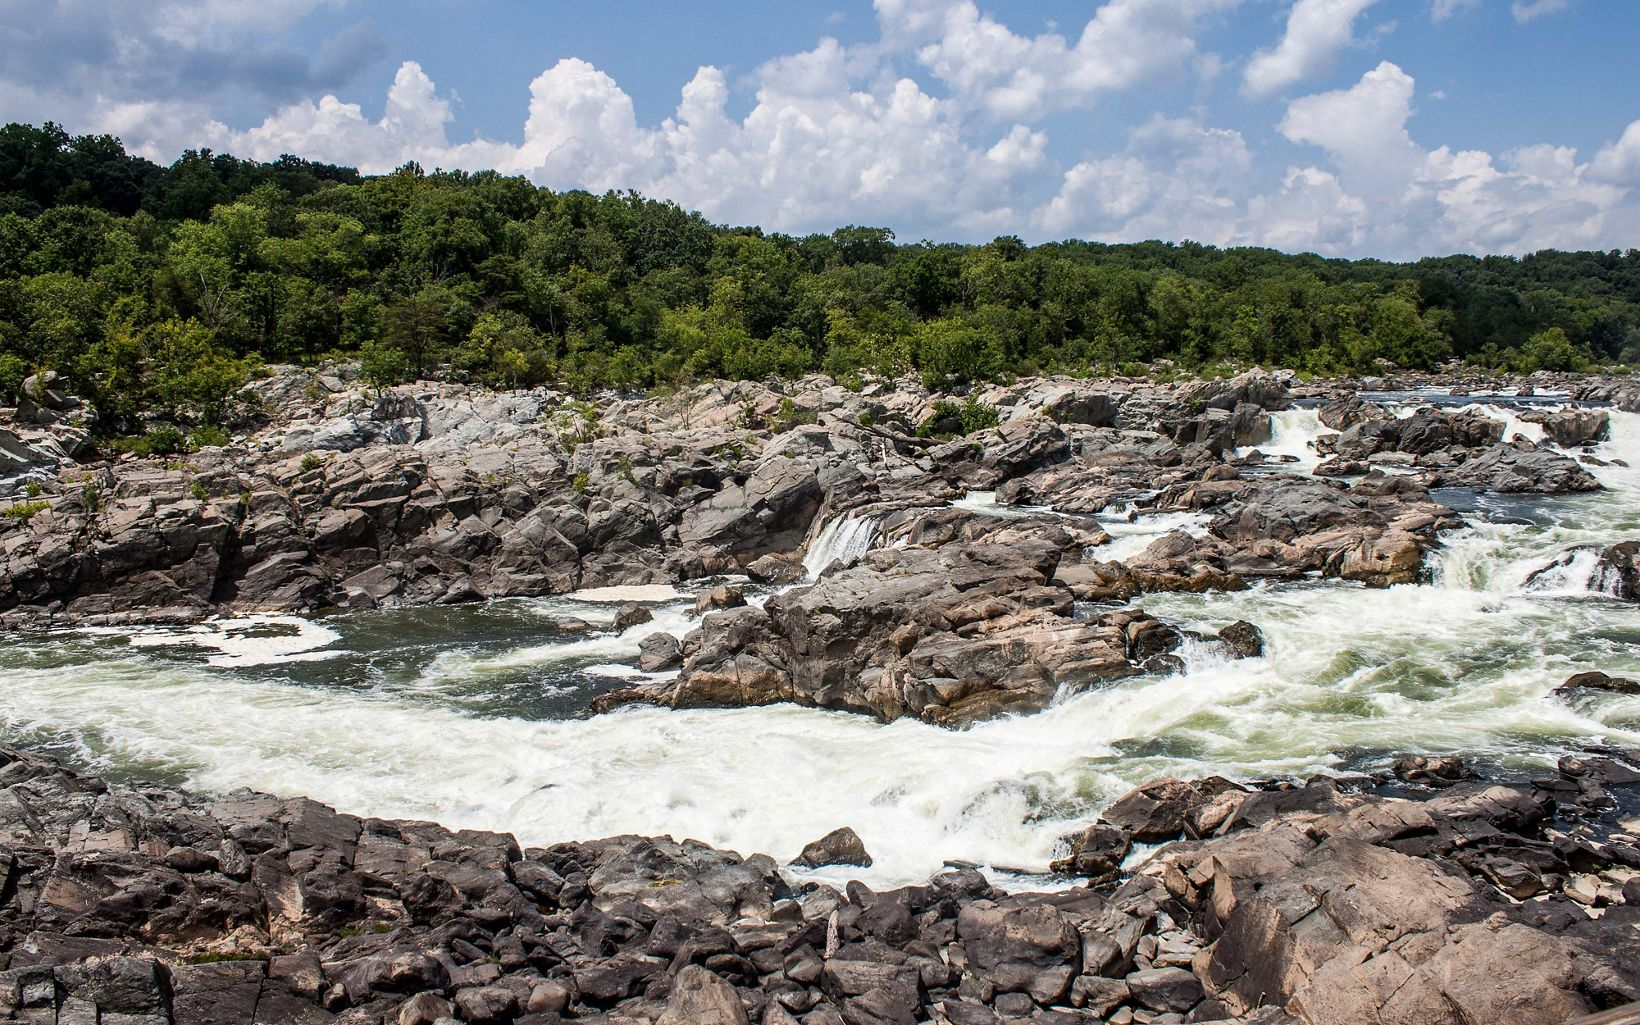 White water rushes over large rocks to create a series of short falls on the Potomac River. The river bank is thickly lined with trees.